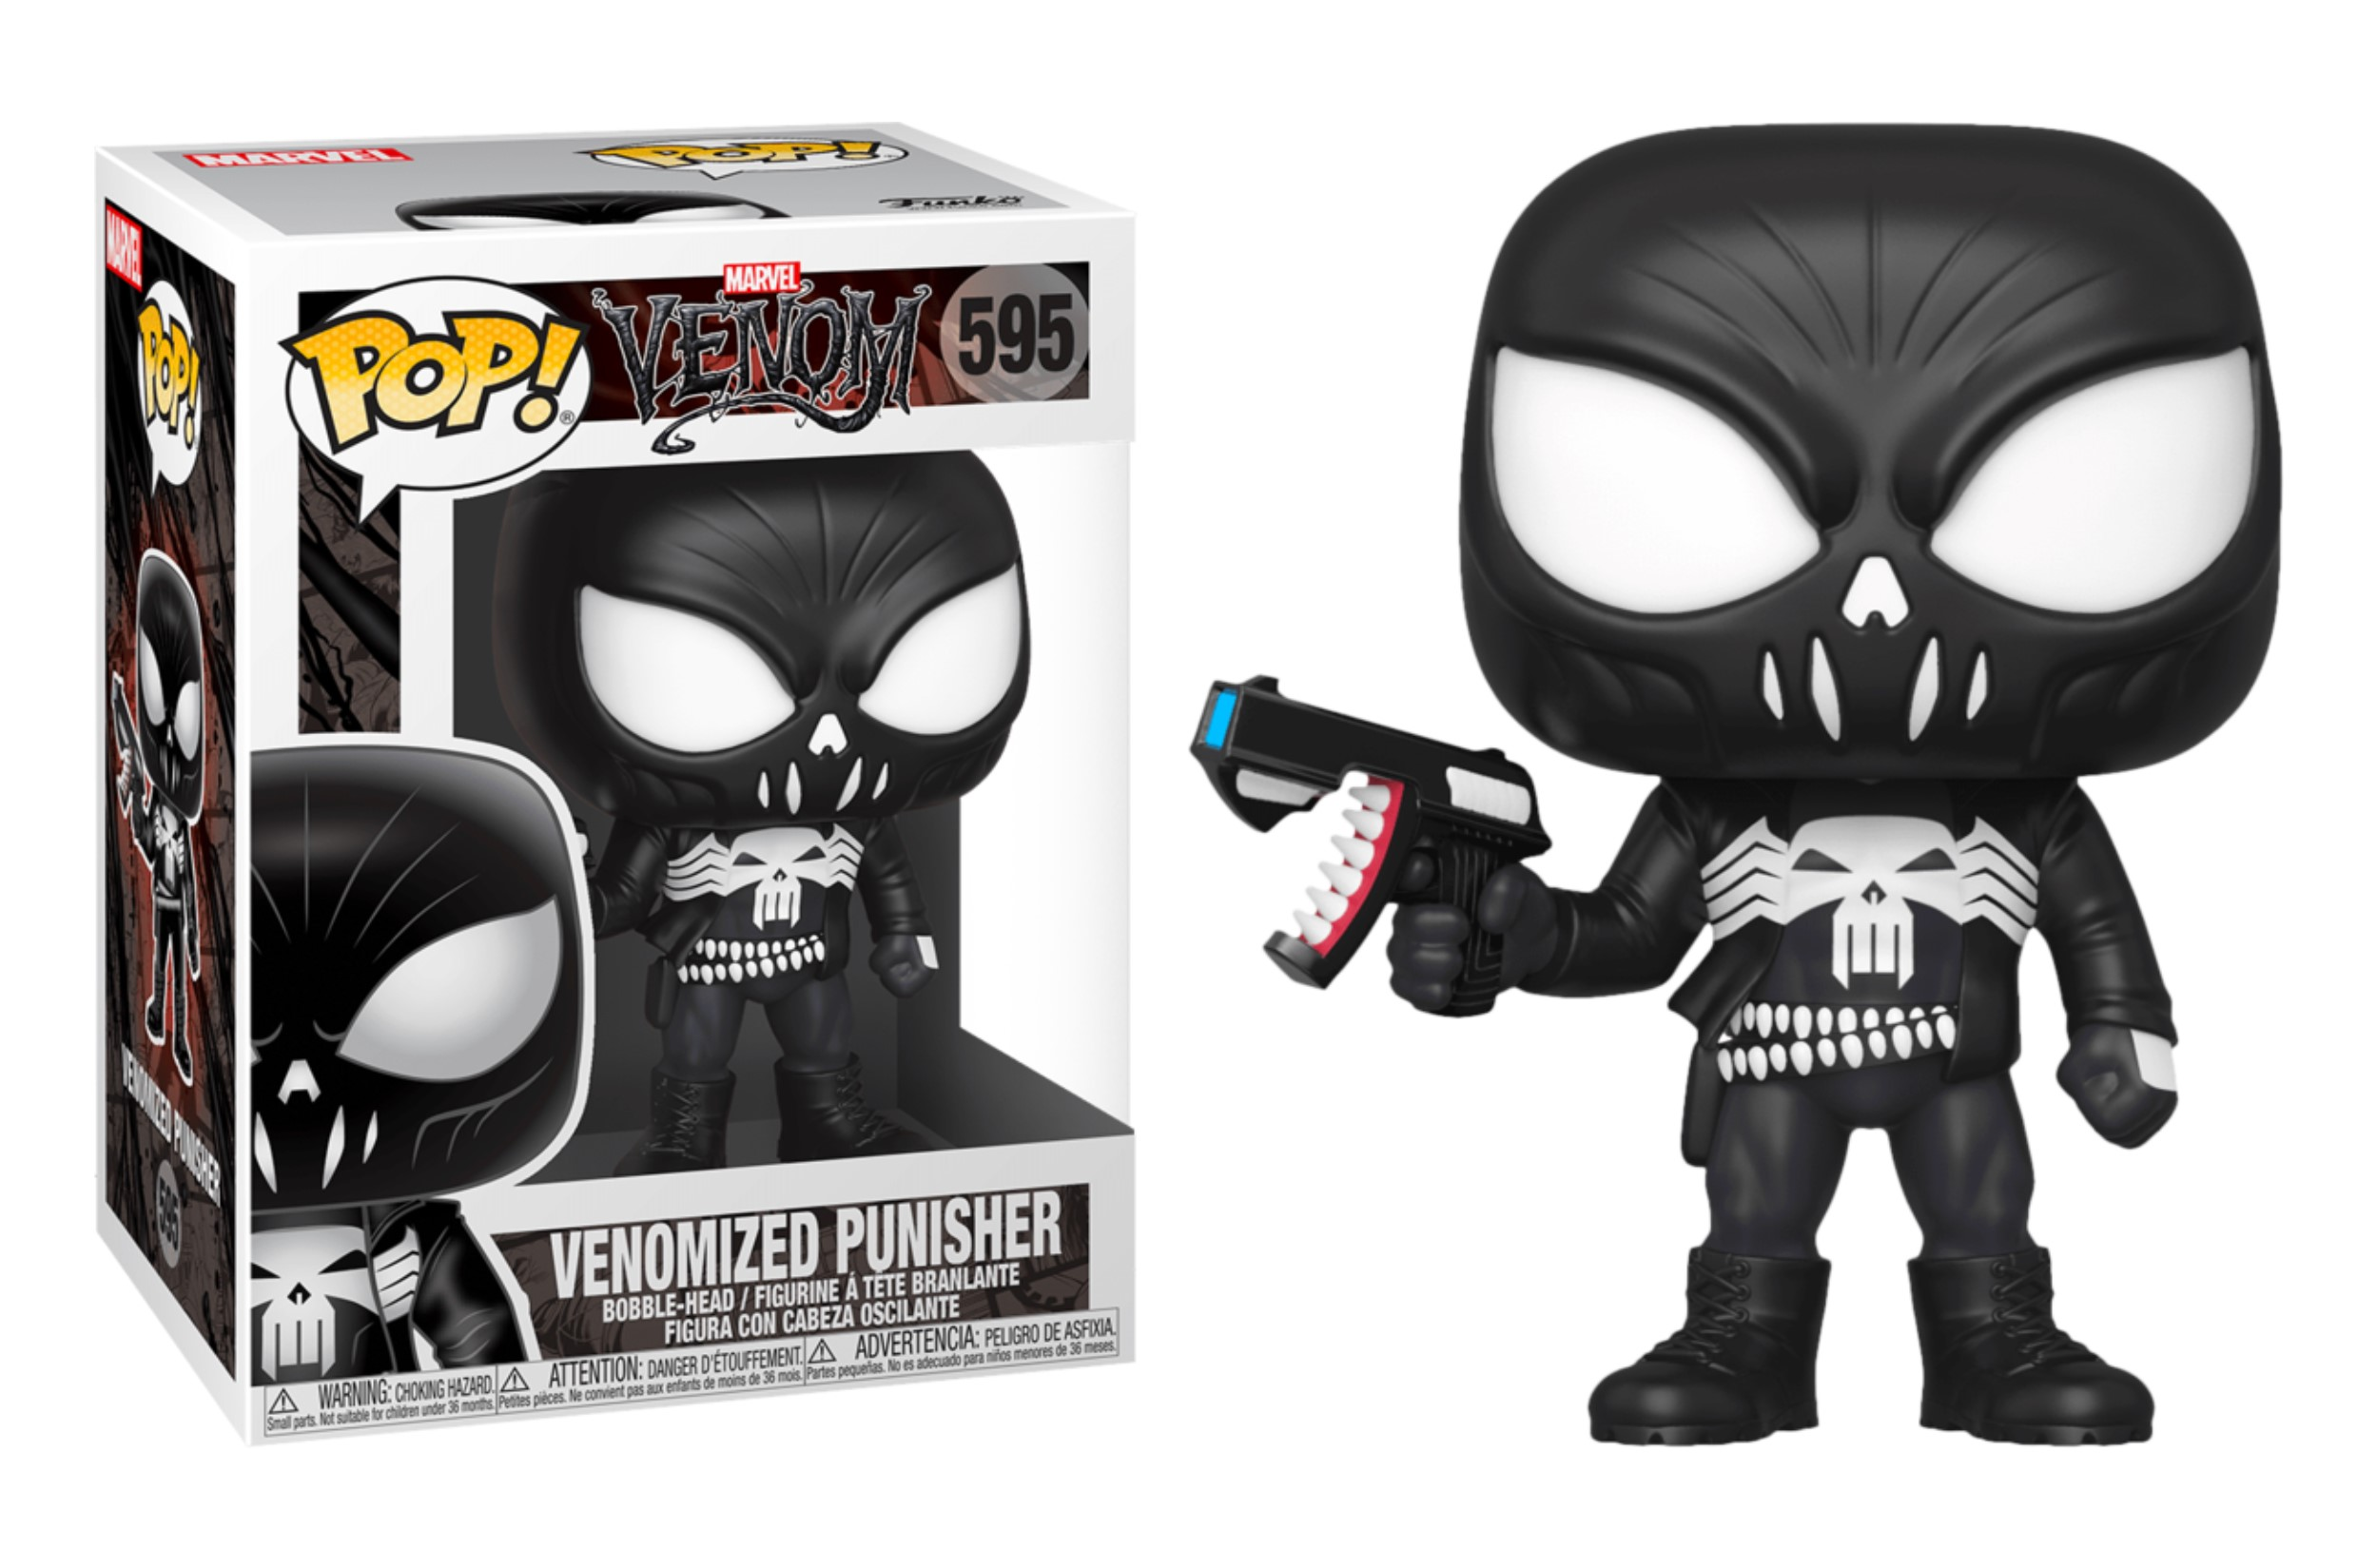 Marvel Venomized Punisher 595 Funko POP Vinyl Figure